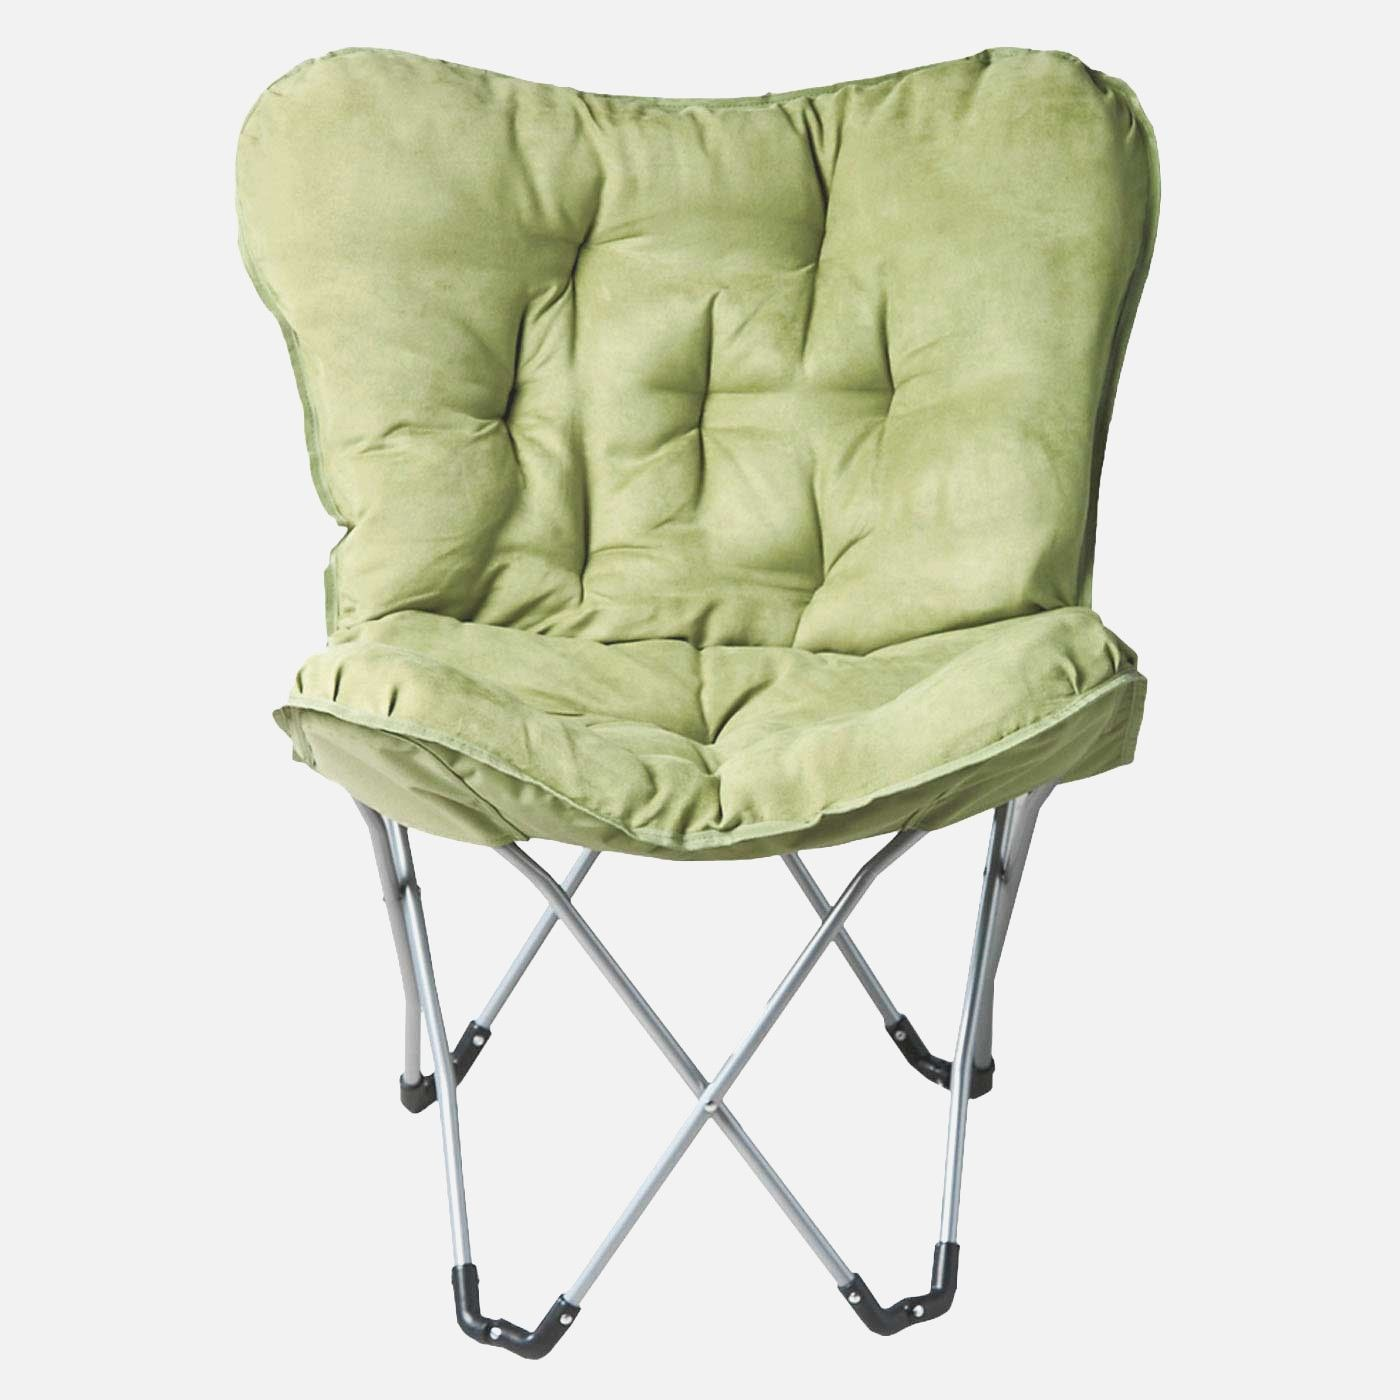 Exceptional Menards Folding Chairs   Menar, Menards Foldable Chair, Menards Folding Outdoor  Chairs, Menards Padded Folding Chairs, Menards Resin Folding Chairs, ...